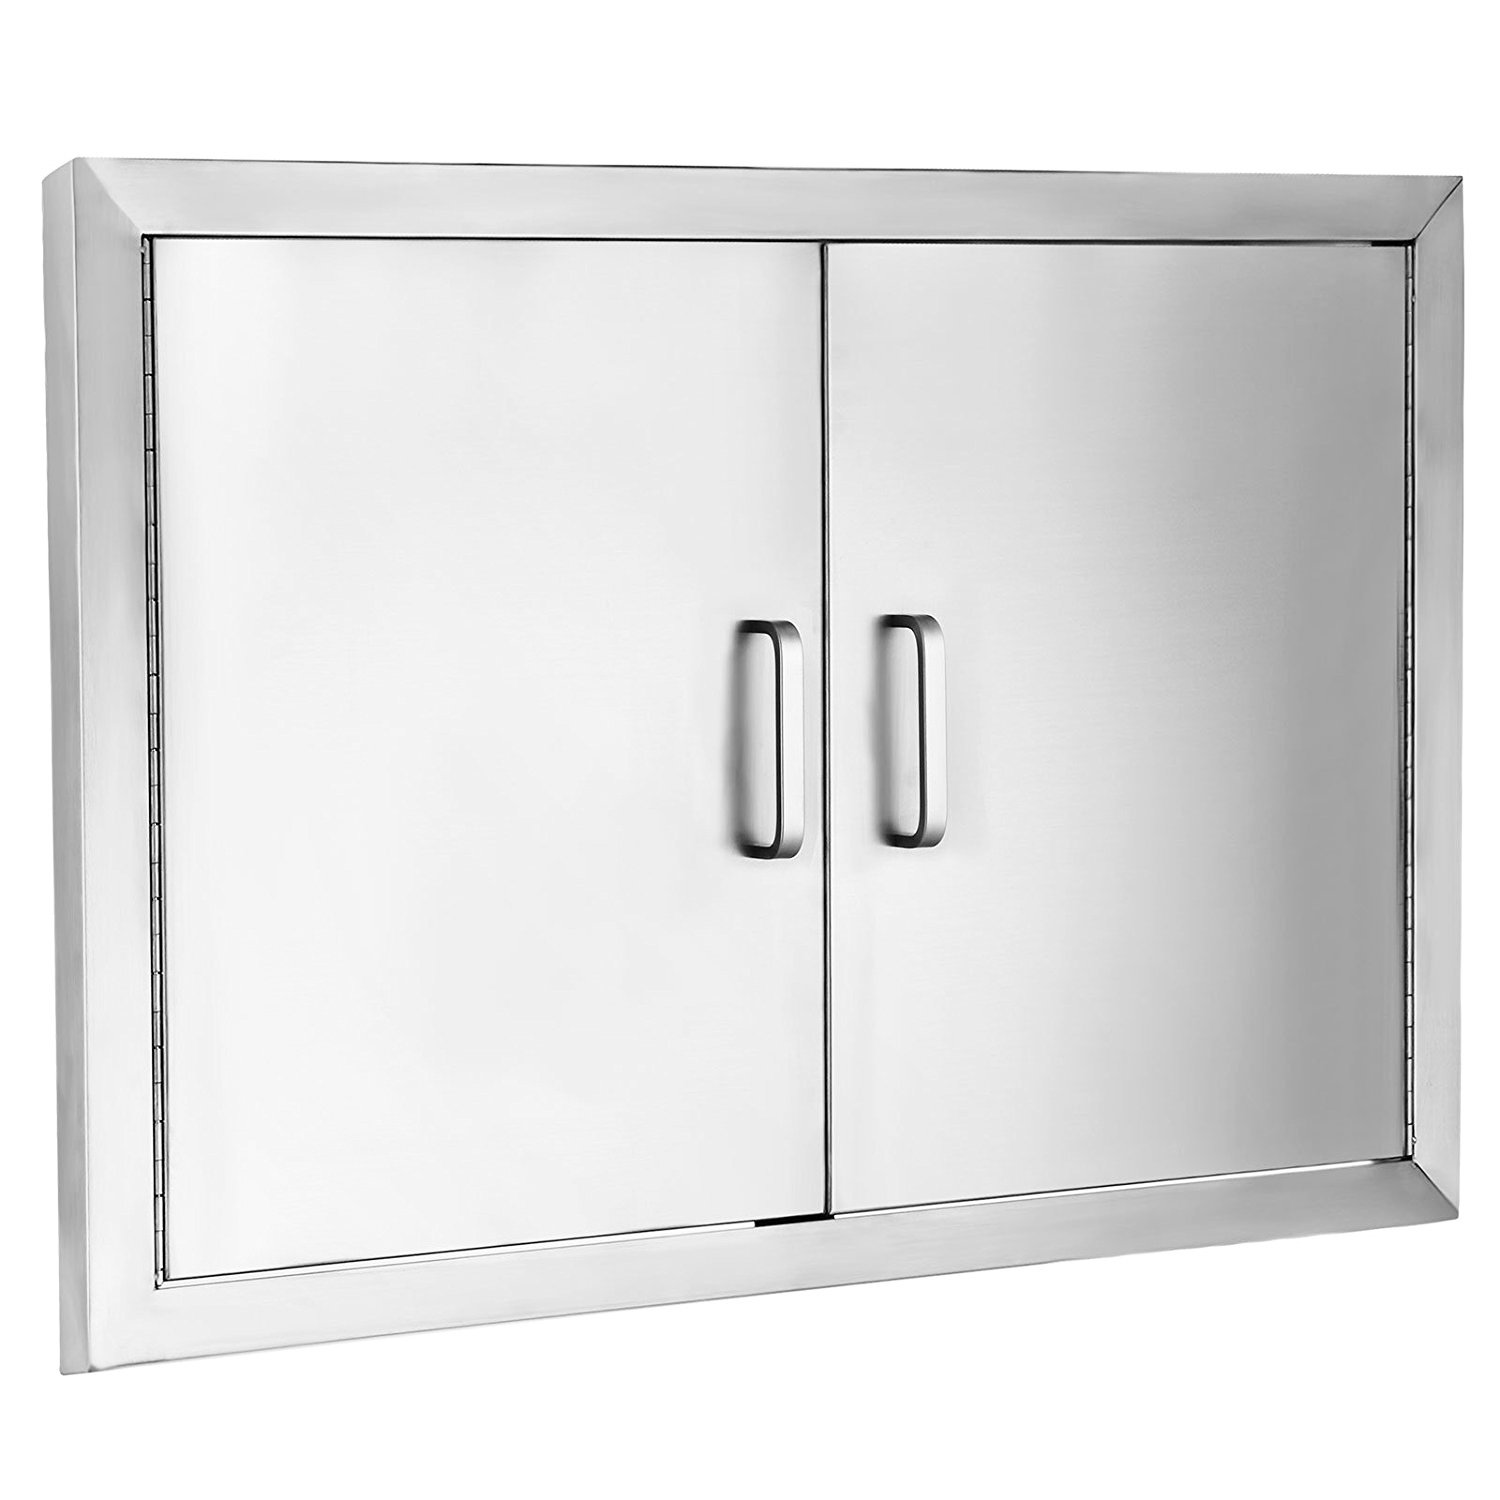 Z-bond 31'' Wx24 H BBQ Access Door 304 Stainless BBQ Island Door Heavy Duty Double Door Flush Mount Great for Outdoor Kitchen by Z-bond